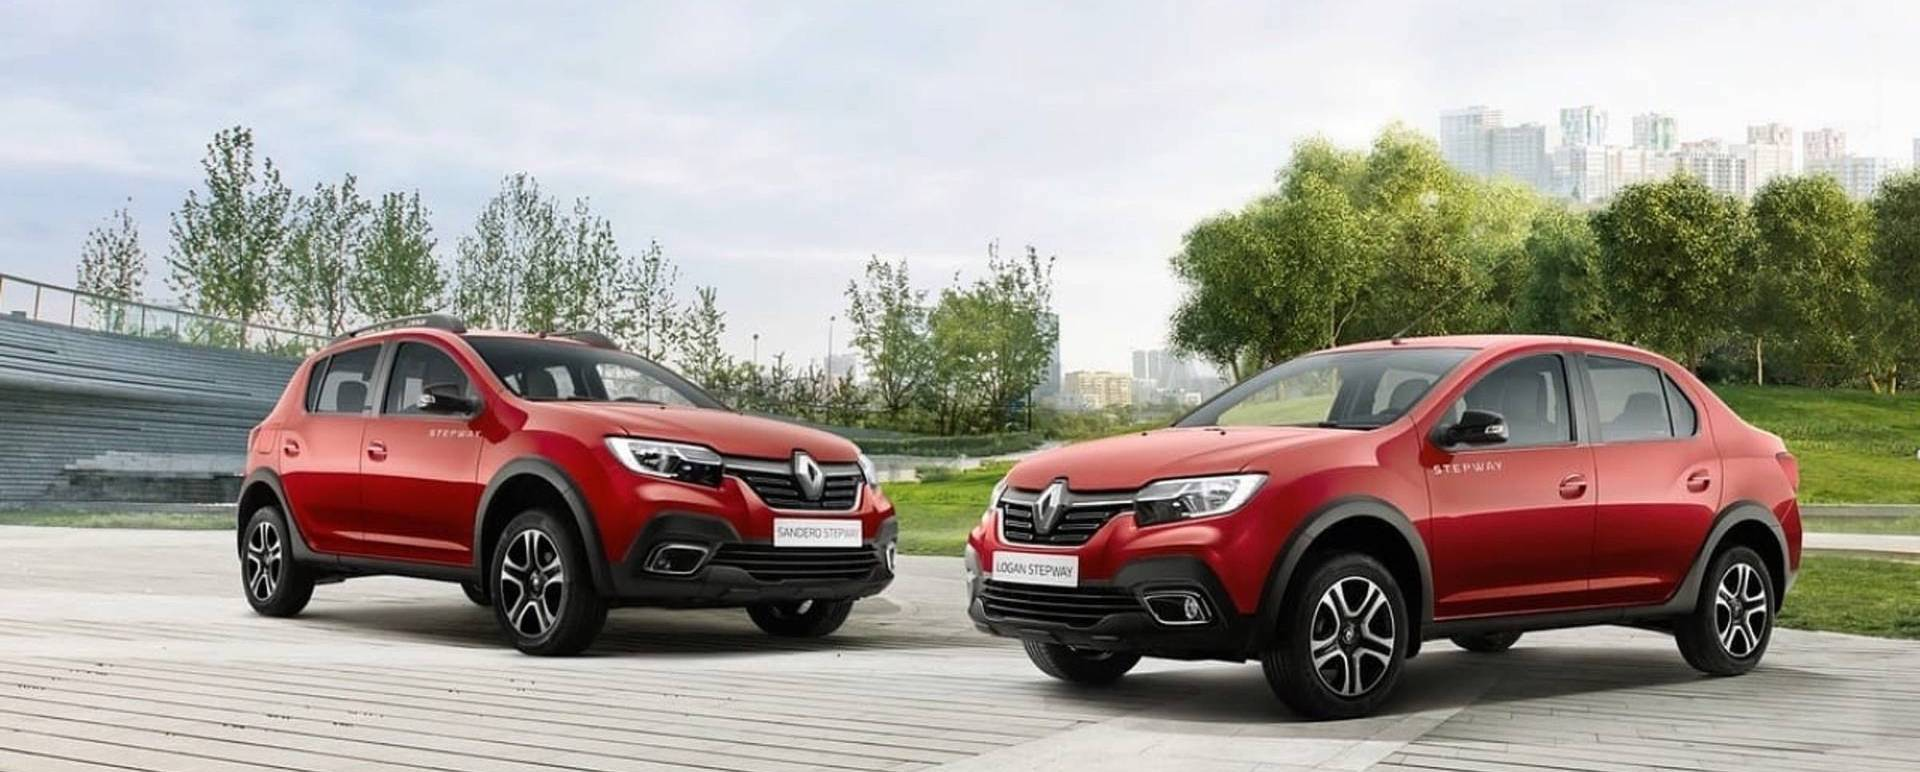 Renault Logan Stepway Is The Rugged Sedan We Weren't Expecting